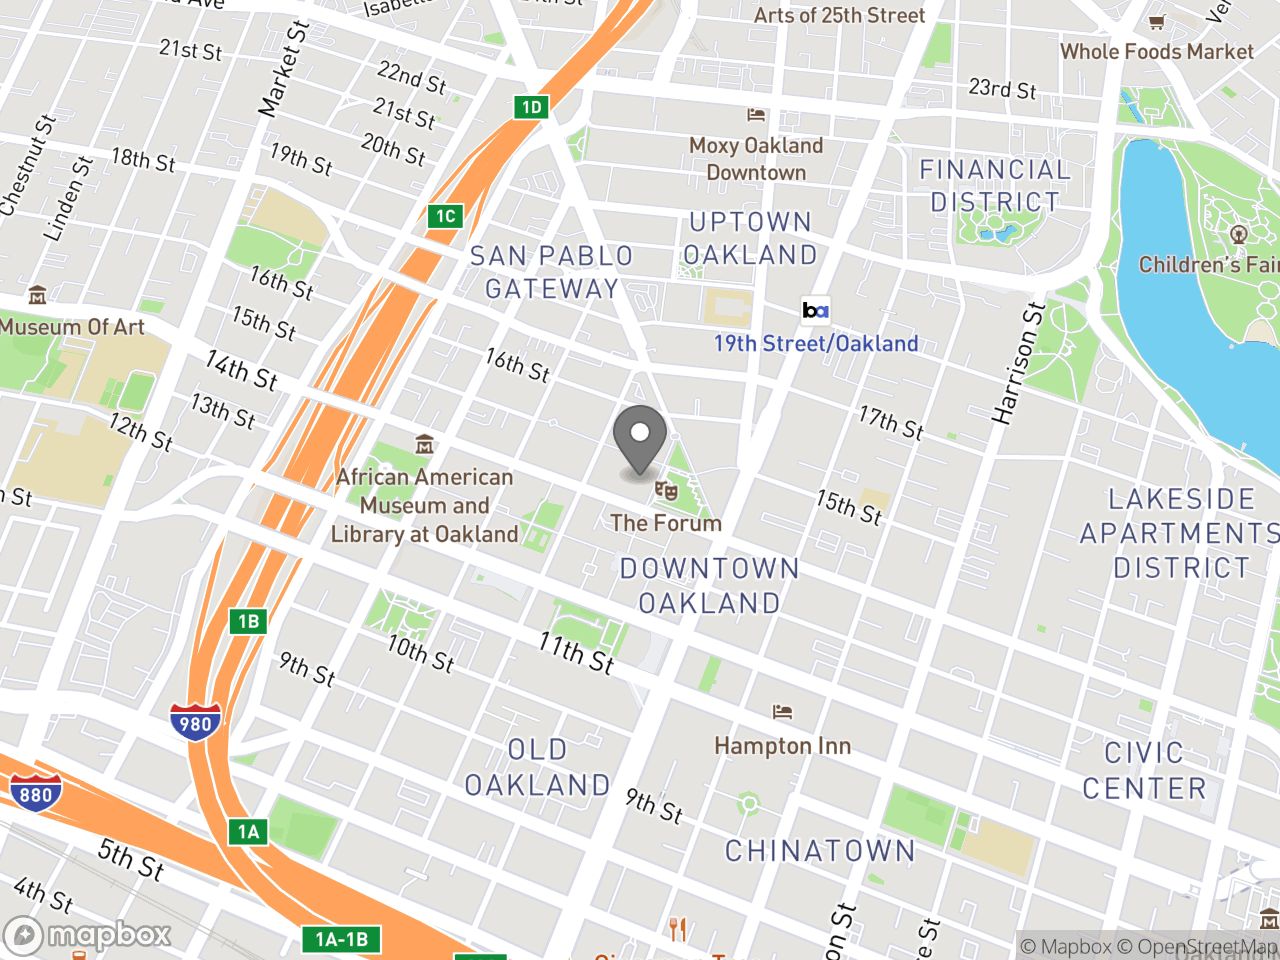 Map location for Mayor's Commission on Persons with Disabilities December 2018 Special Year-End Retreat, located at 1 Frank H Ogawa Plaza in Oakland, CA 94612